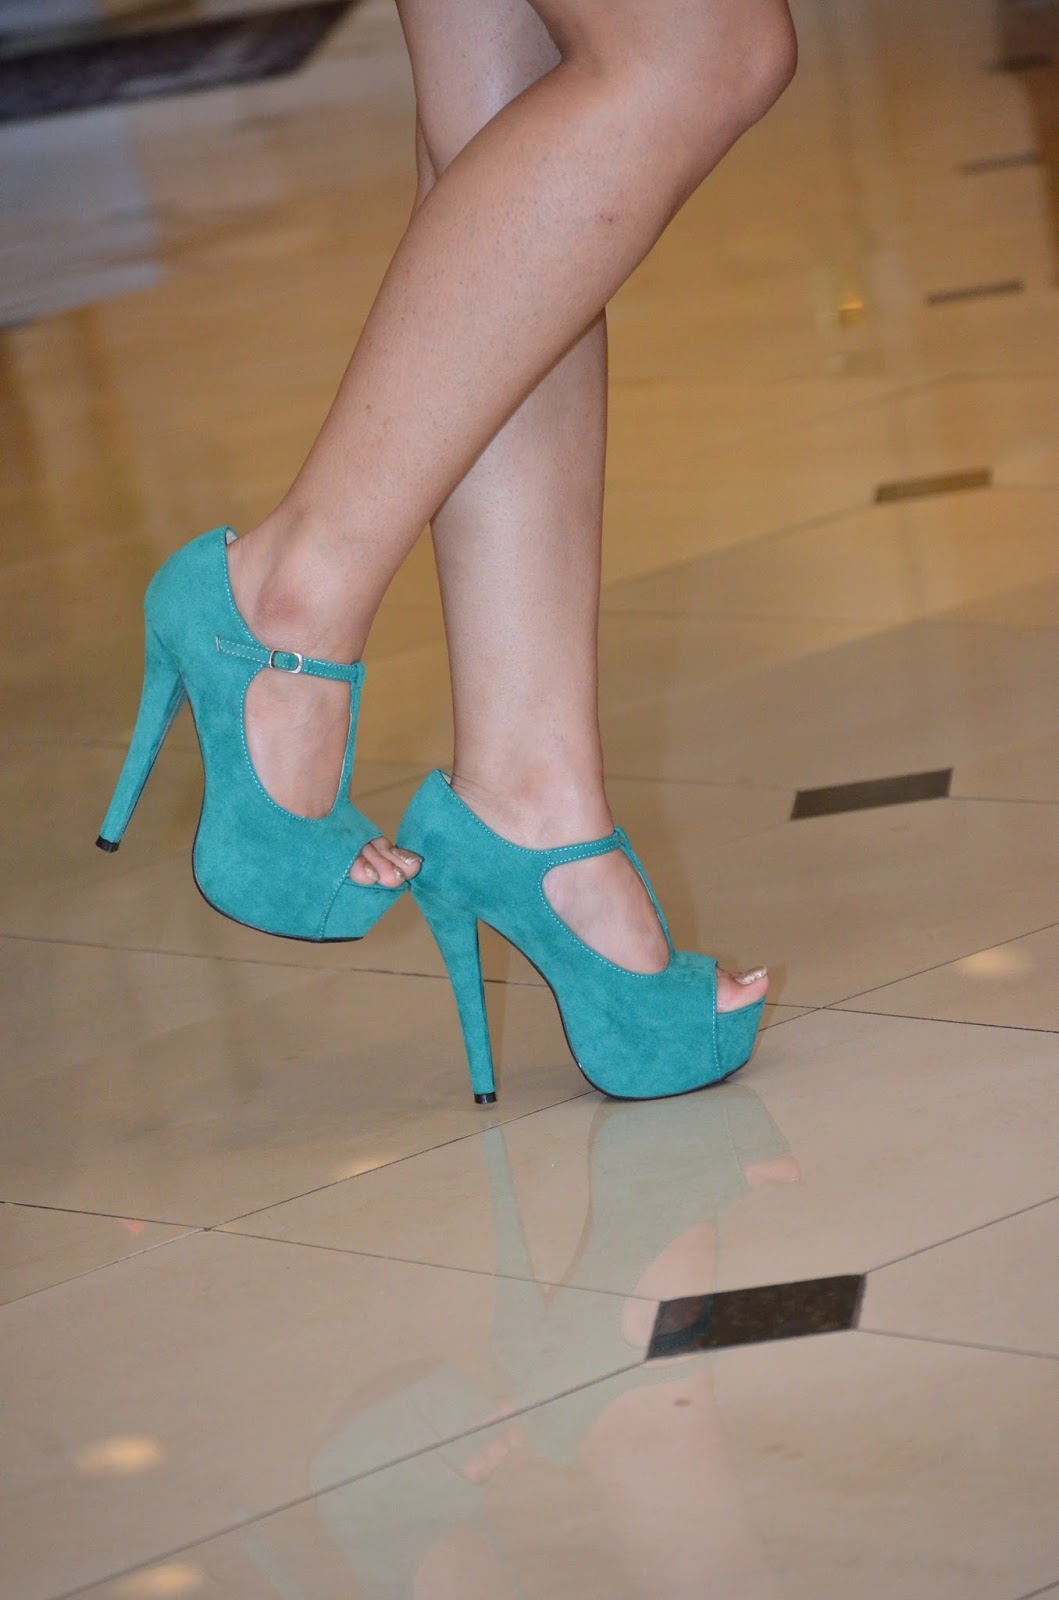 Peplum Skirt/ Green Shoes